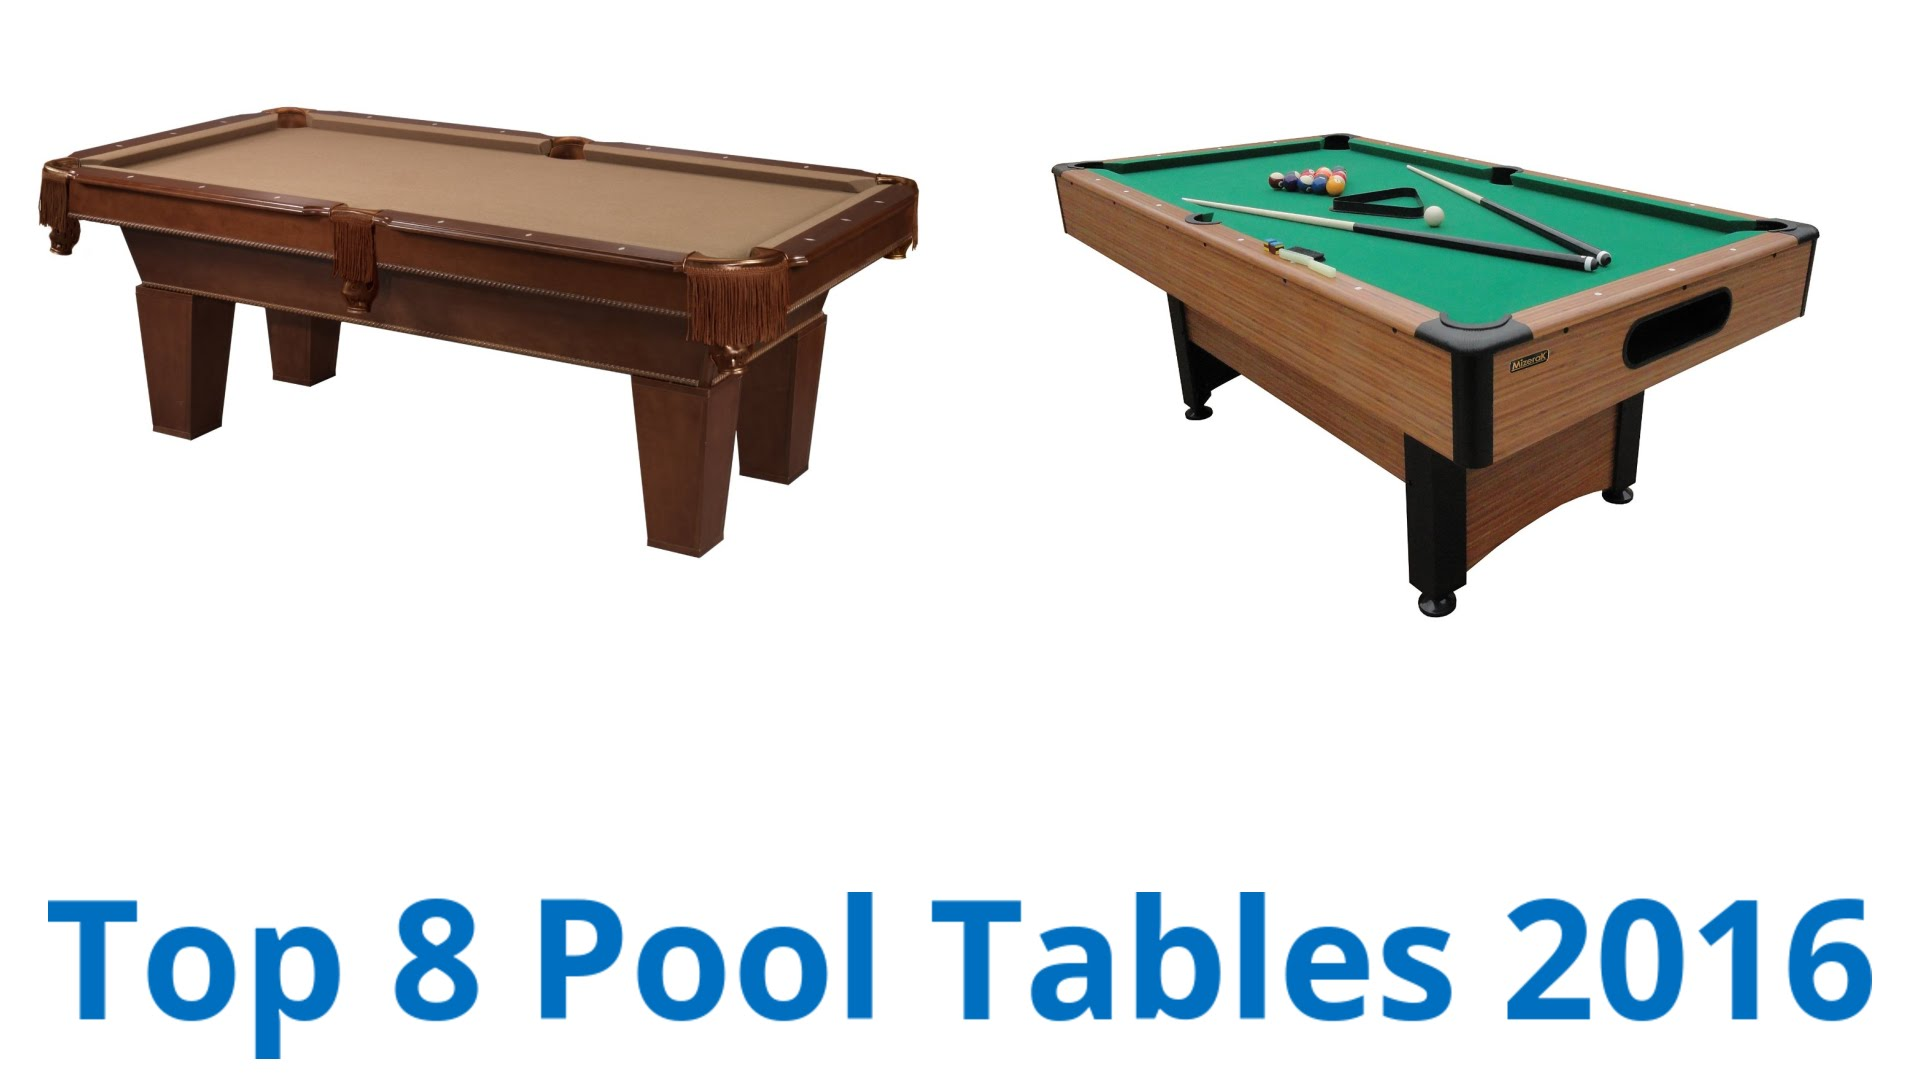 6 Foot Snooker Table | Mizerak Outdoor Pool Table | Mizerak Pool Table